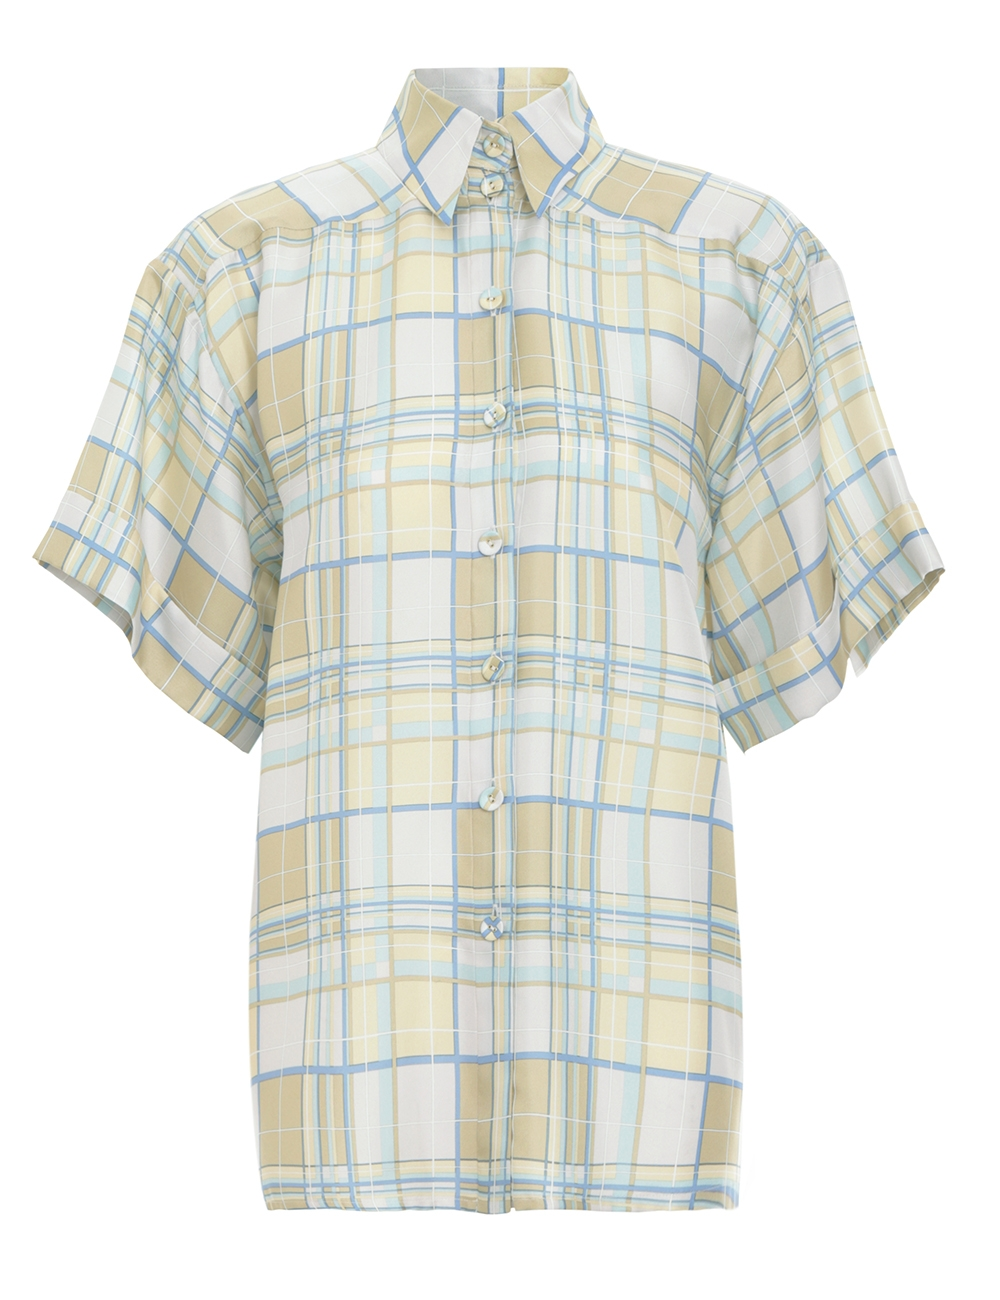 Super Eight Pyjama Style Shirt